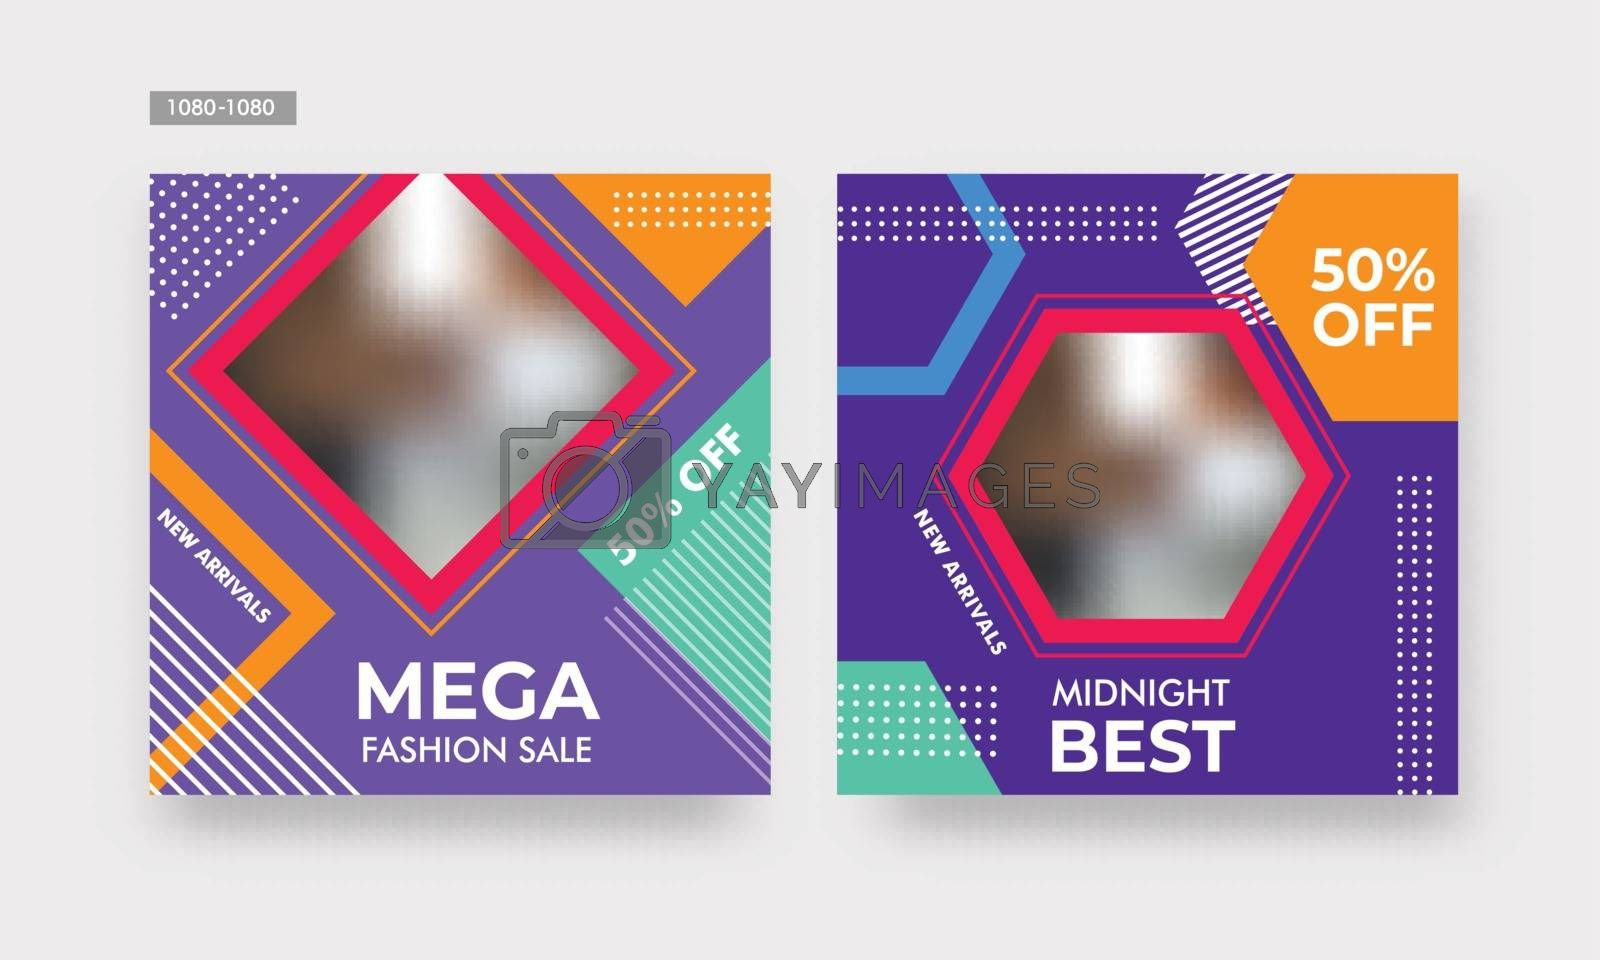 Royalty free image of Mega sale poster or banner design with 50% discount offer on shi by aispl